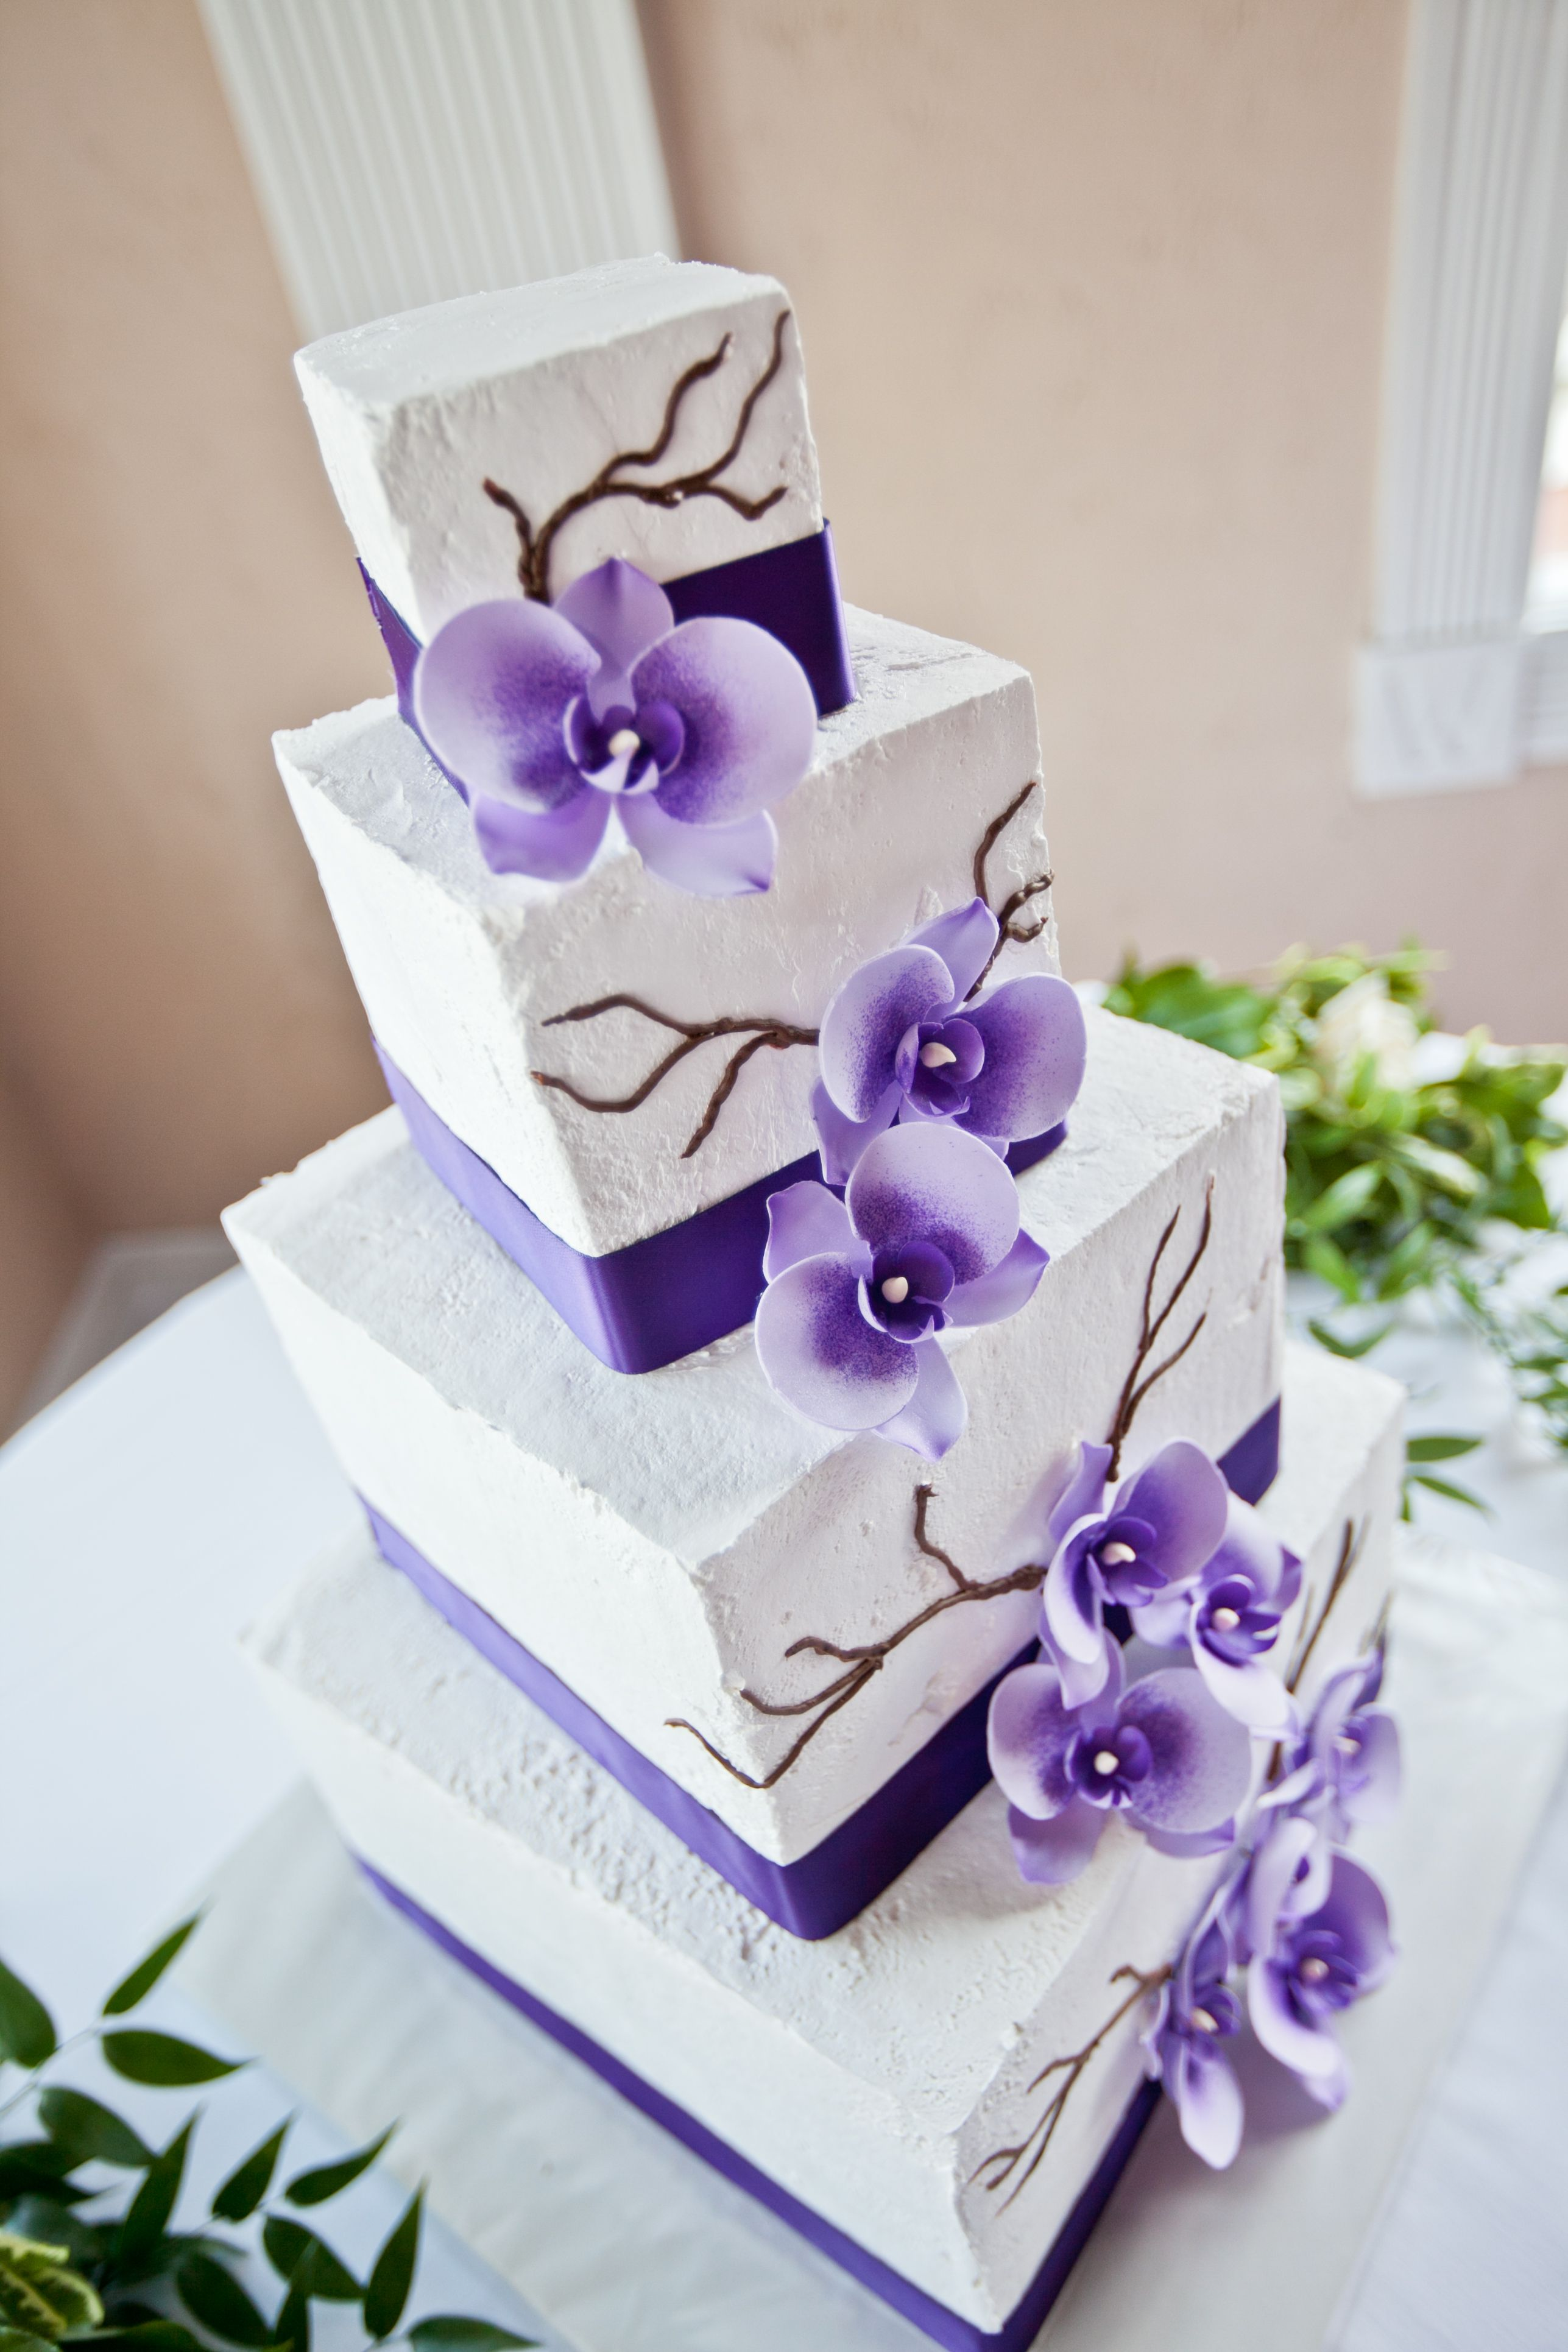 Wedding cake without fondant...I'm thinking fondant would